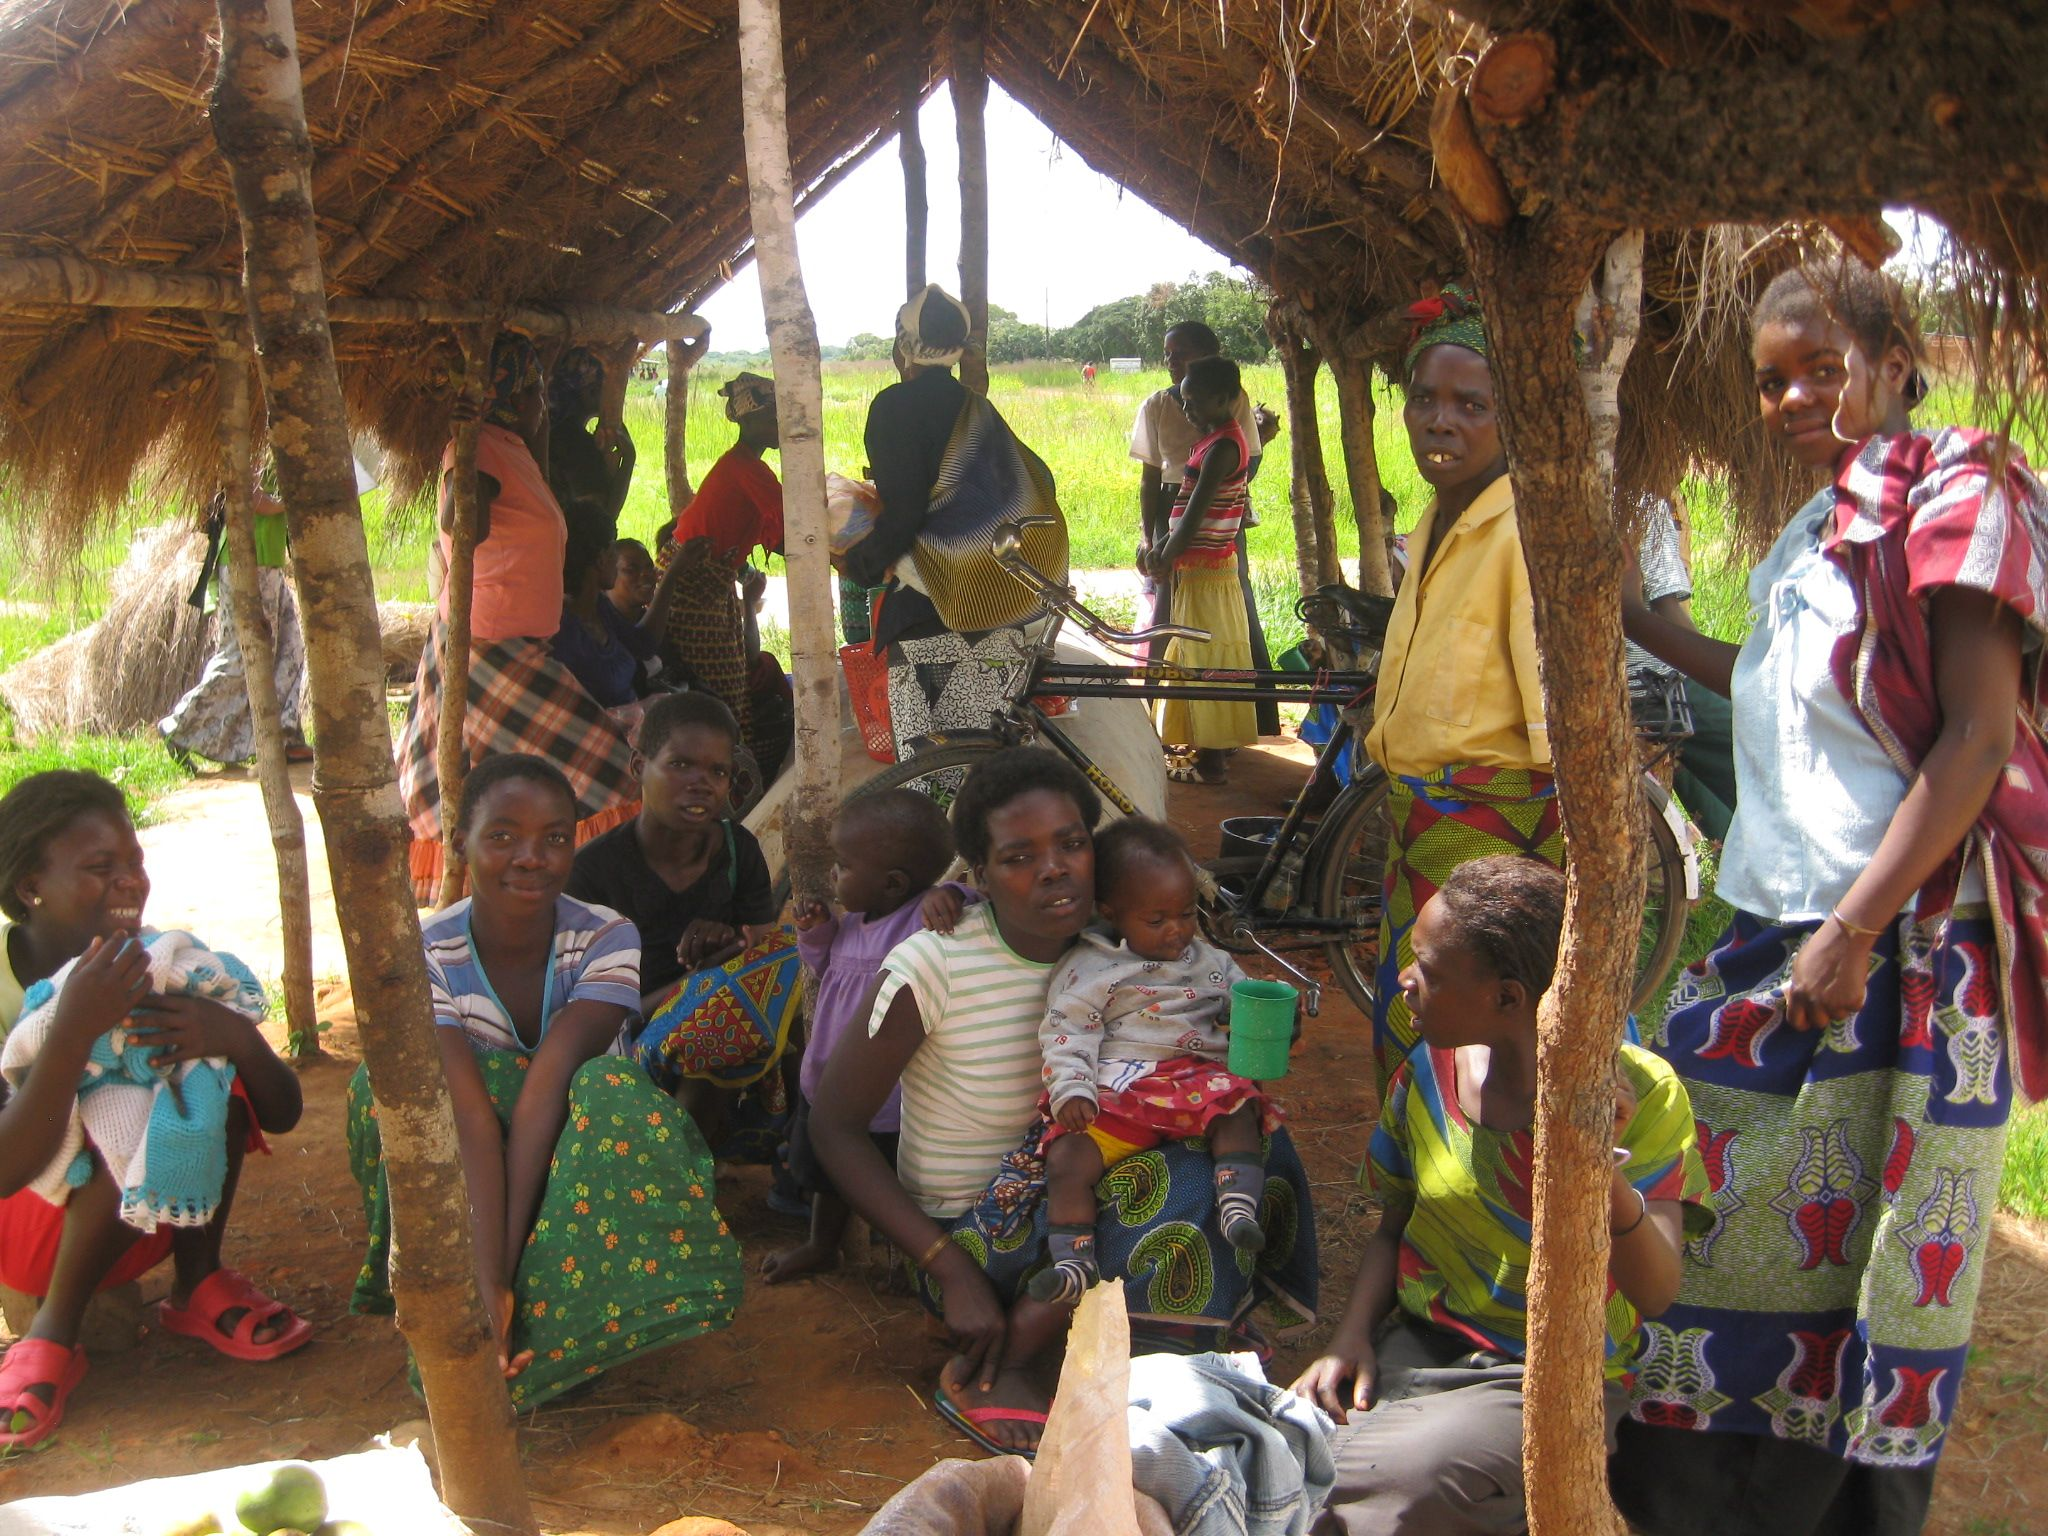 Women and children gather at the local market in Central Zambia.